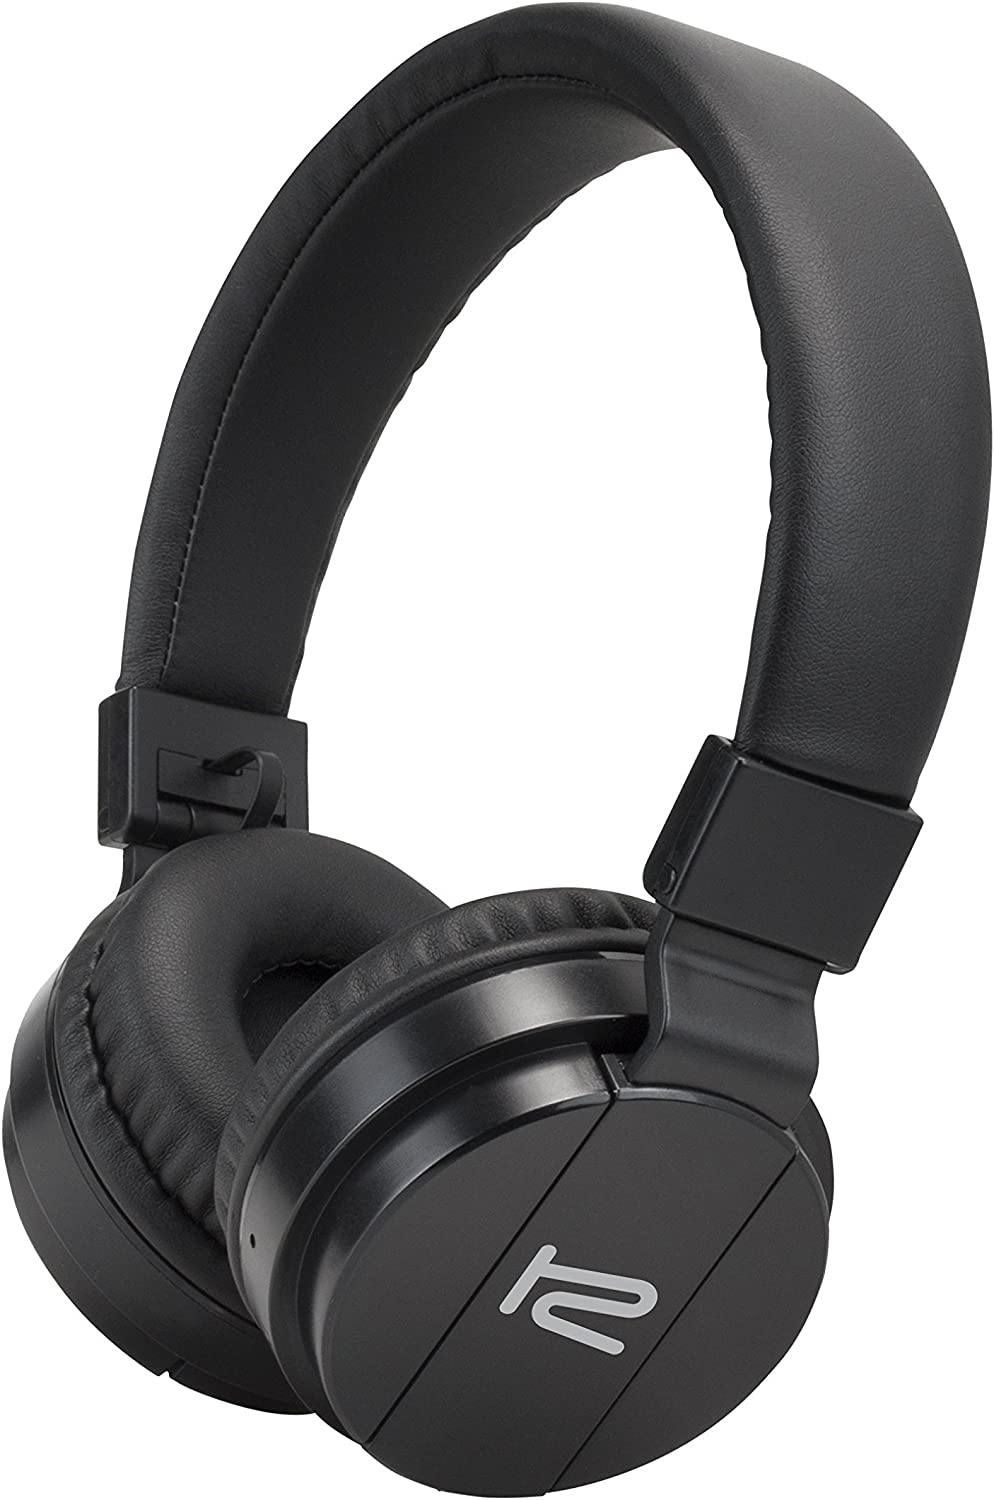 Klip Xtreme Fury Stereo Blue-Tooth Wireless Headphones- On-Ear with Built-in Microphone, Foldable & Lightweight- Soft Protein Leather Pads- Large 40mm Speaker Drivers- Black Color